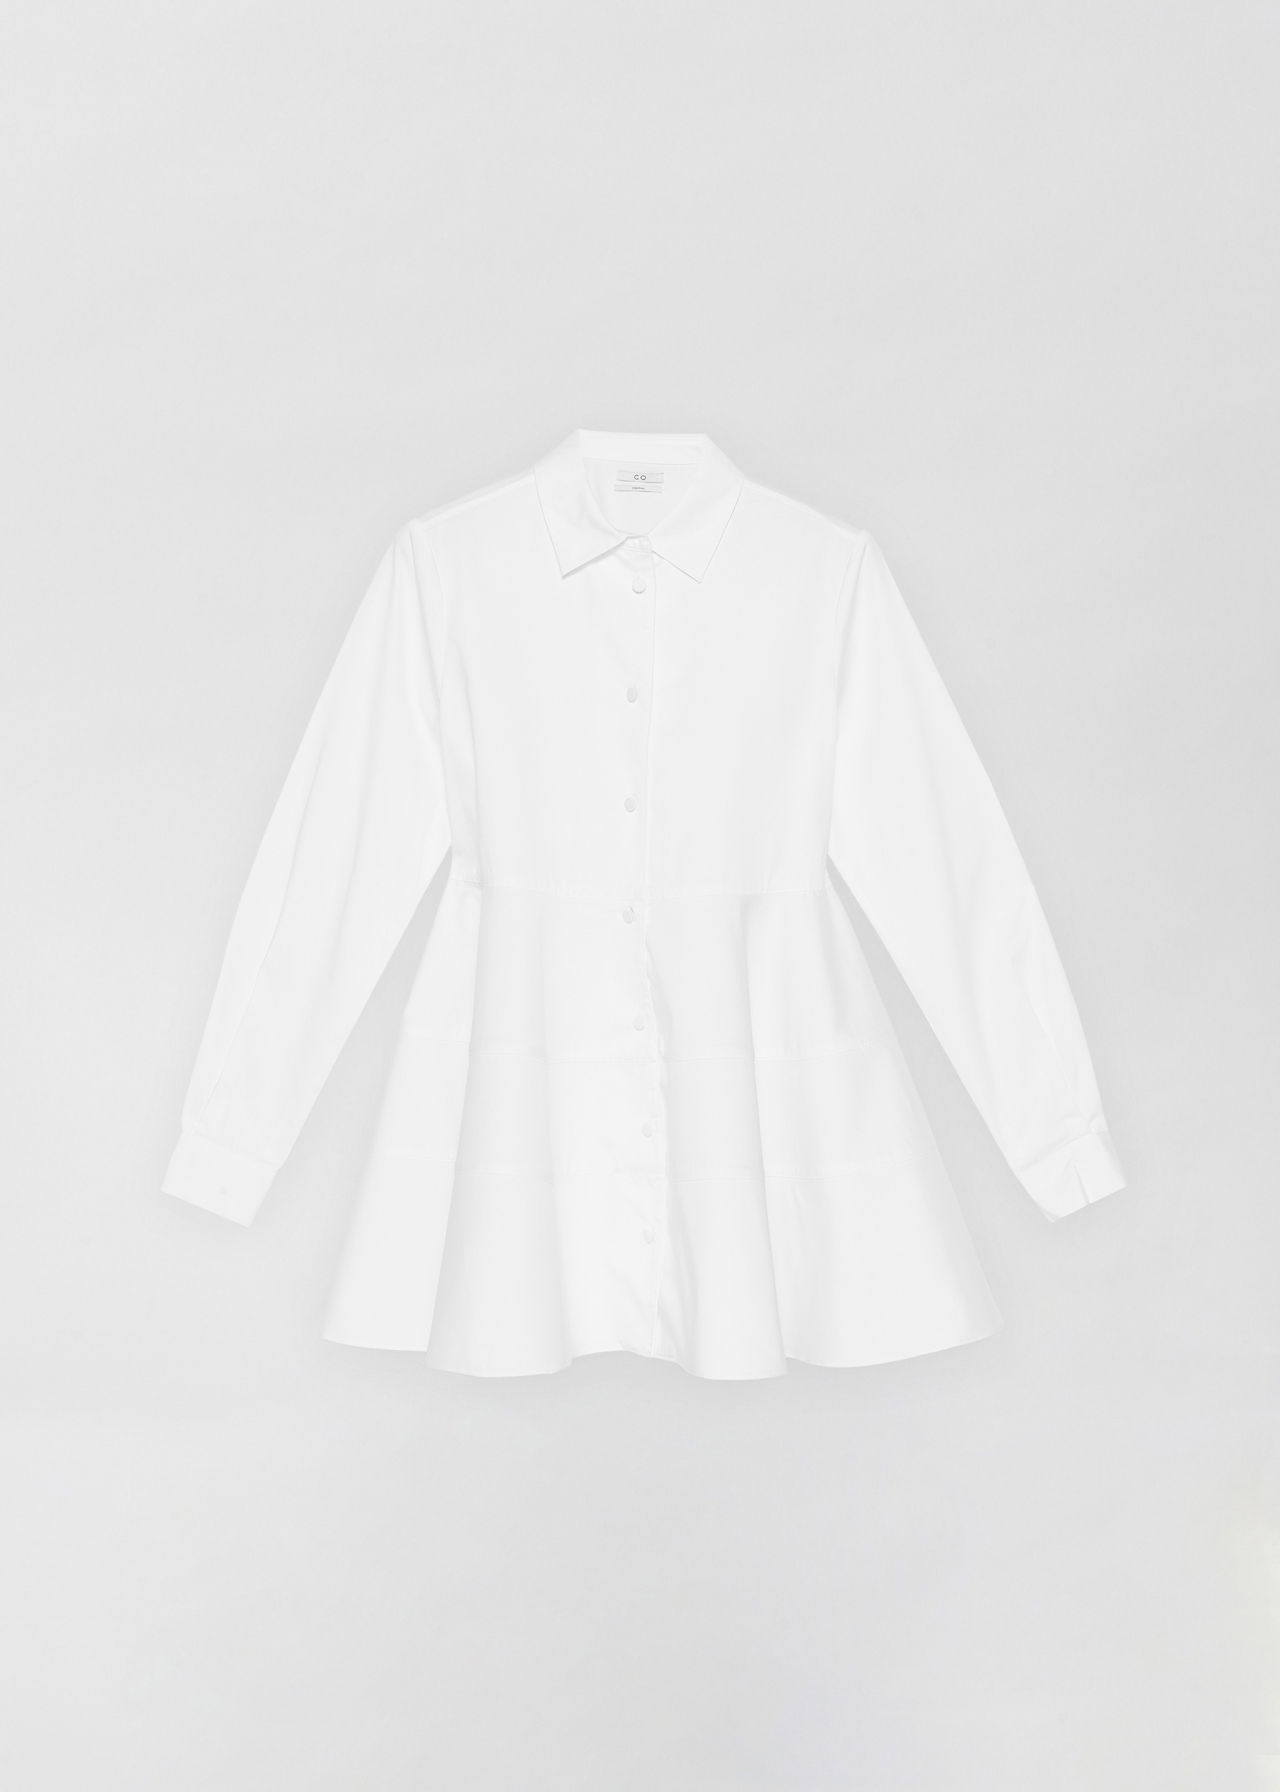 Tiered Button Down Shirt - Black in White by Co Collections